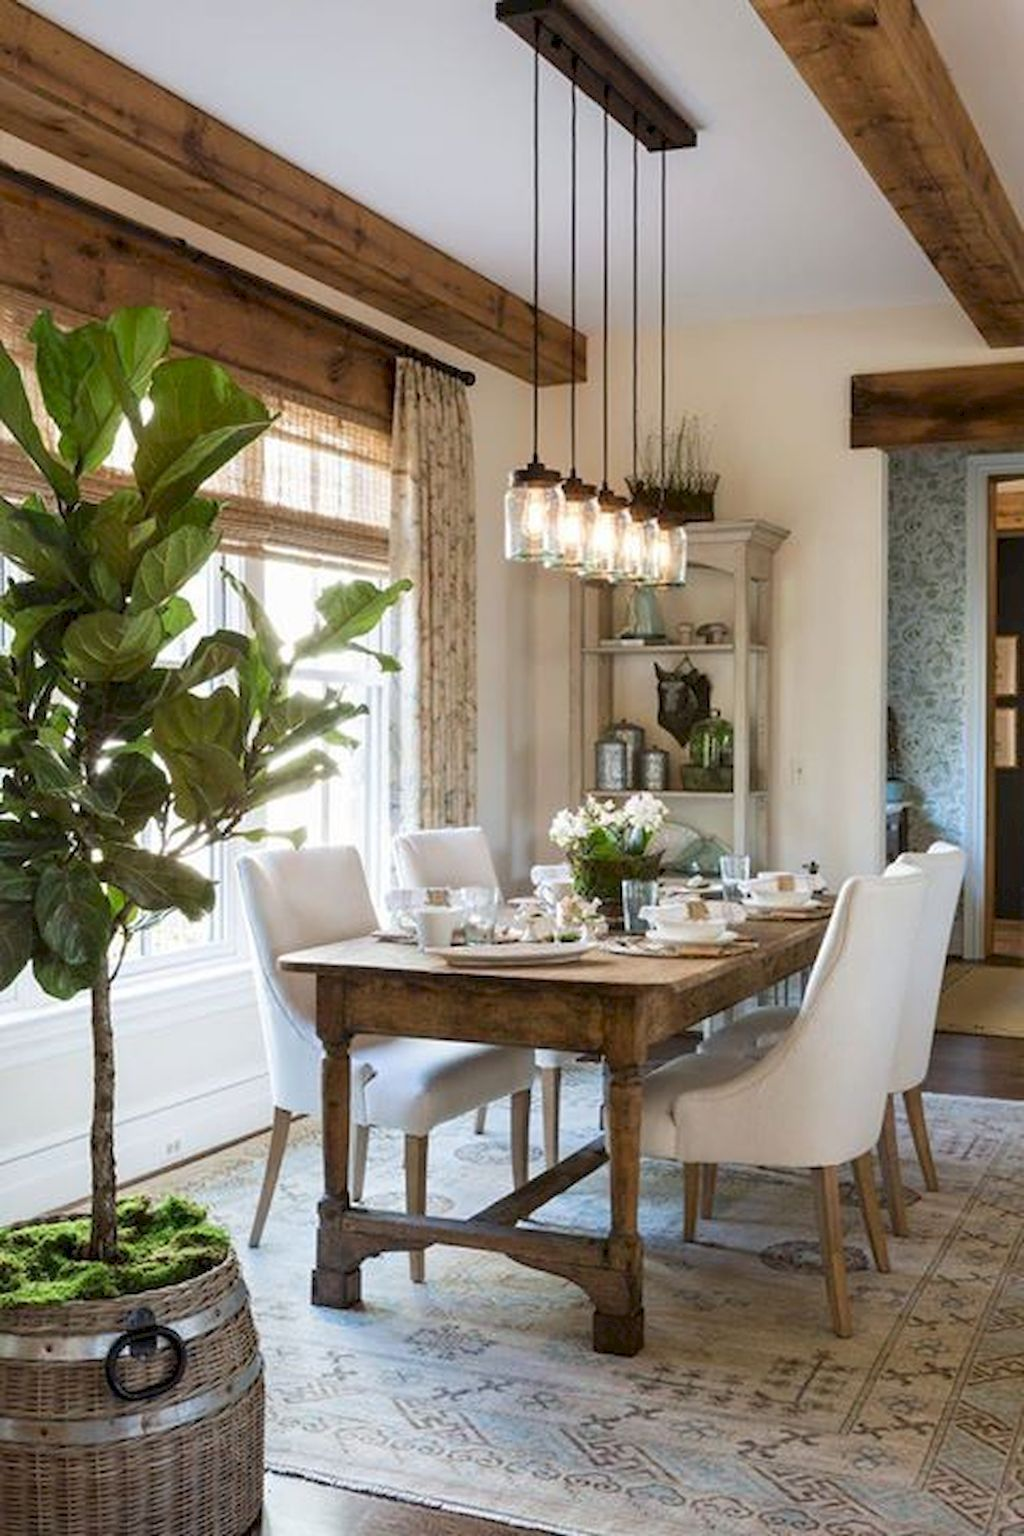 Pin By Sharon Sofra On Homes Interior Exterior Dining Room